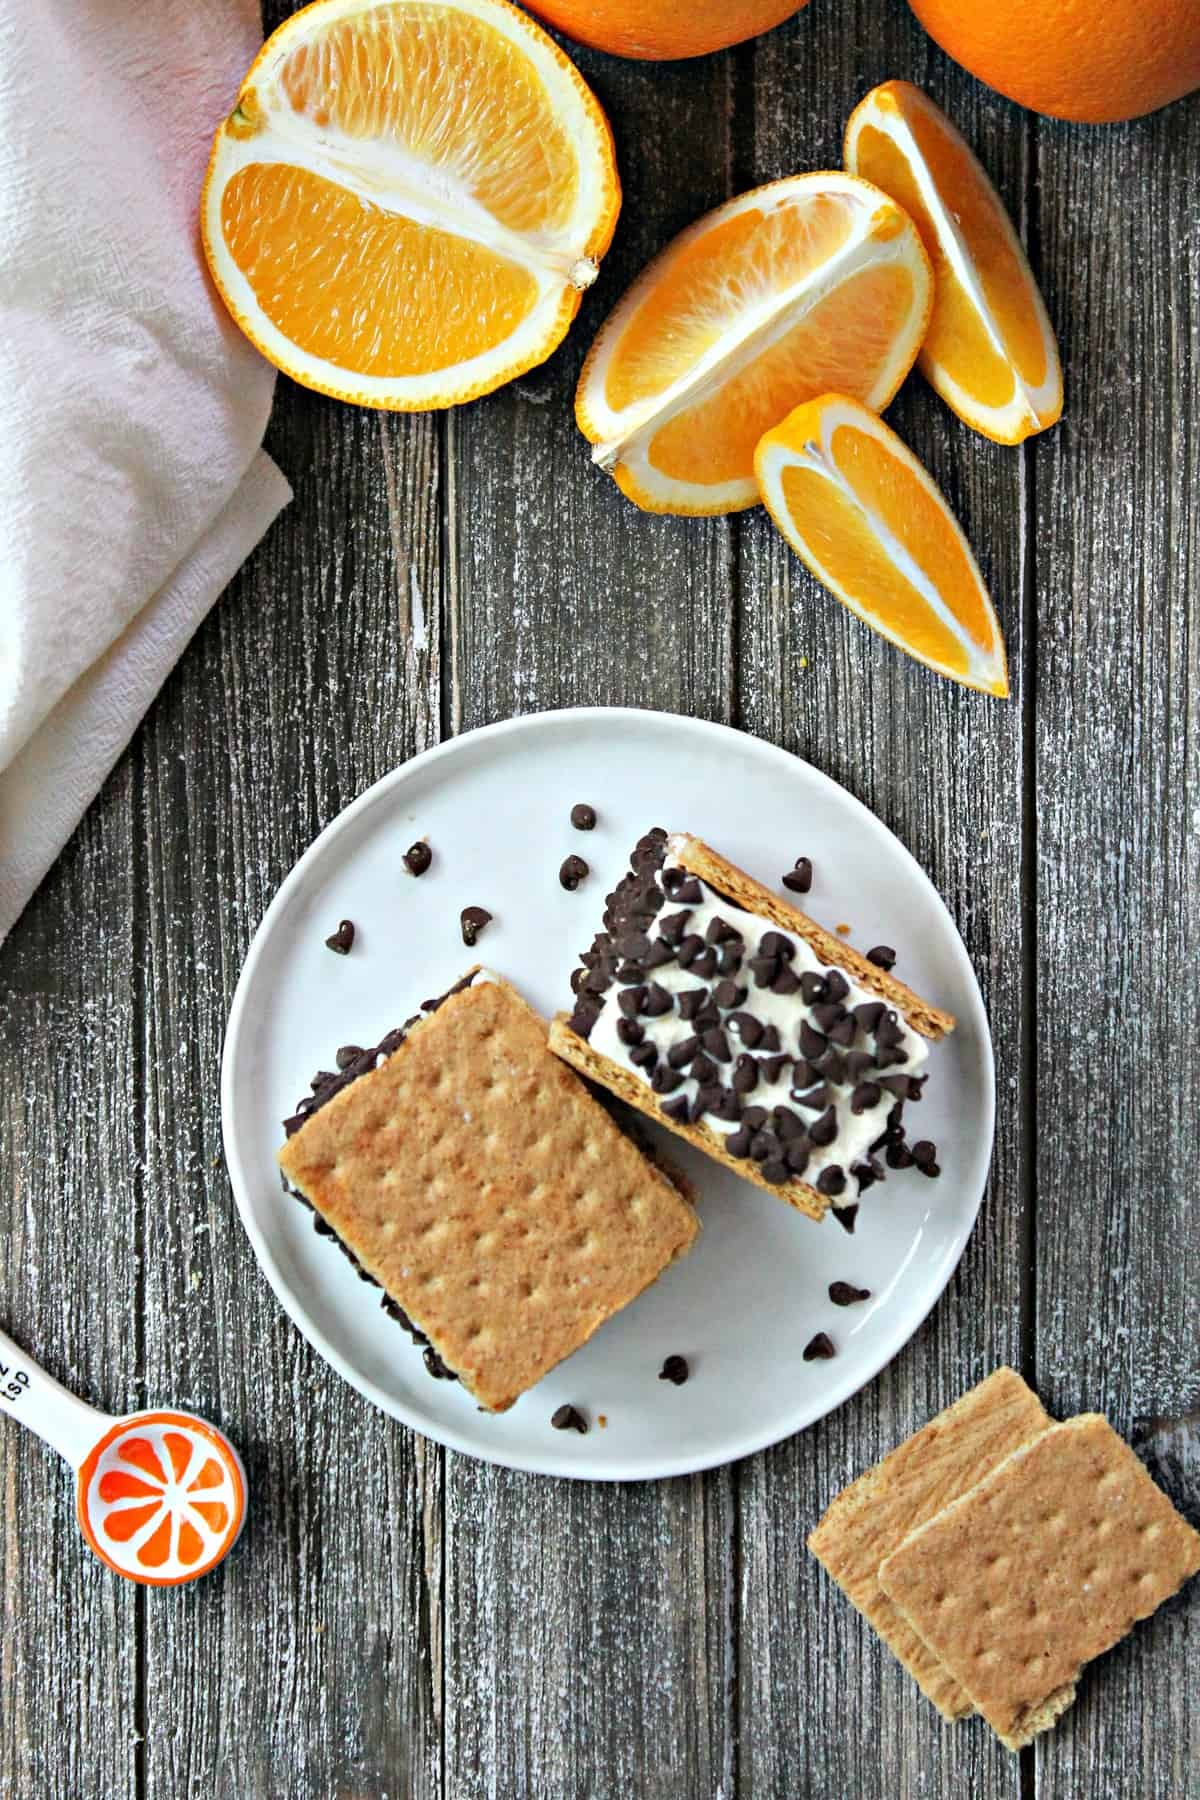 Easy No-Churn Orange-Chip Ice Cream Sandwiches! Orange-infused, no churn ice cream is cut into perfect portions, sandwiched between graham crackers & rolled in mini chocolate chips. A sweet summer dessert that's easy to whip up with your kids and even easier to eat!